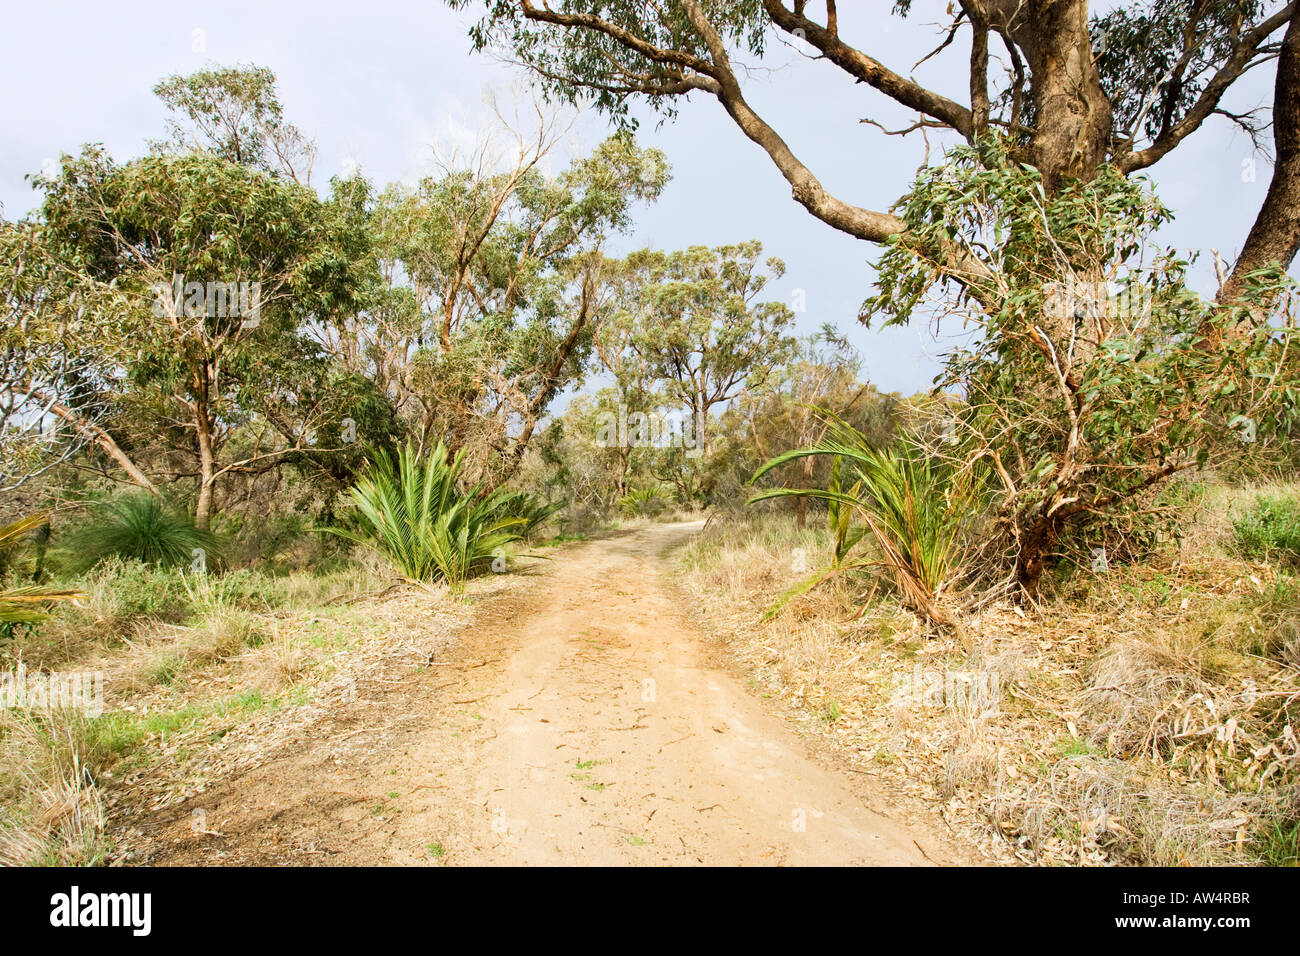 Macrozamia plants (of the cycad family) and eucalyptus trees growing beside a dirt road near Perth, Western Australia Stock Photo